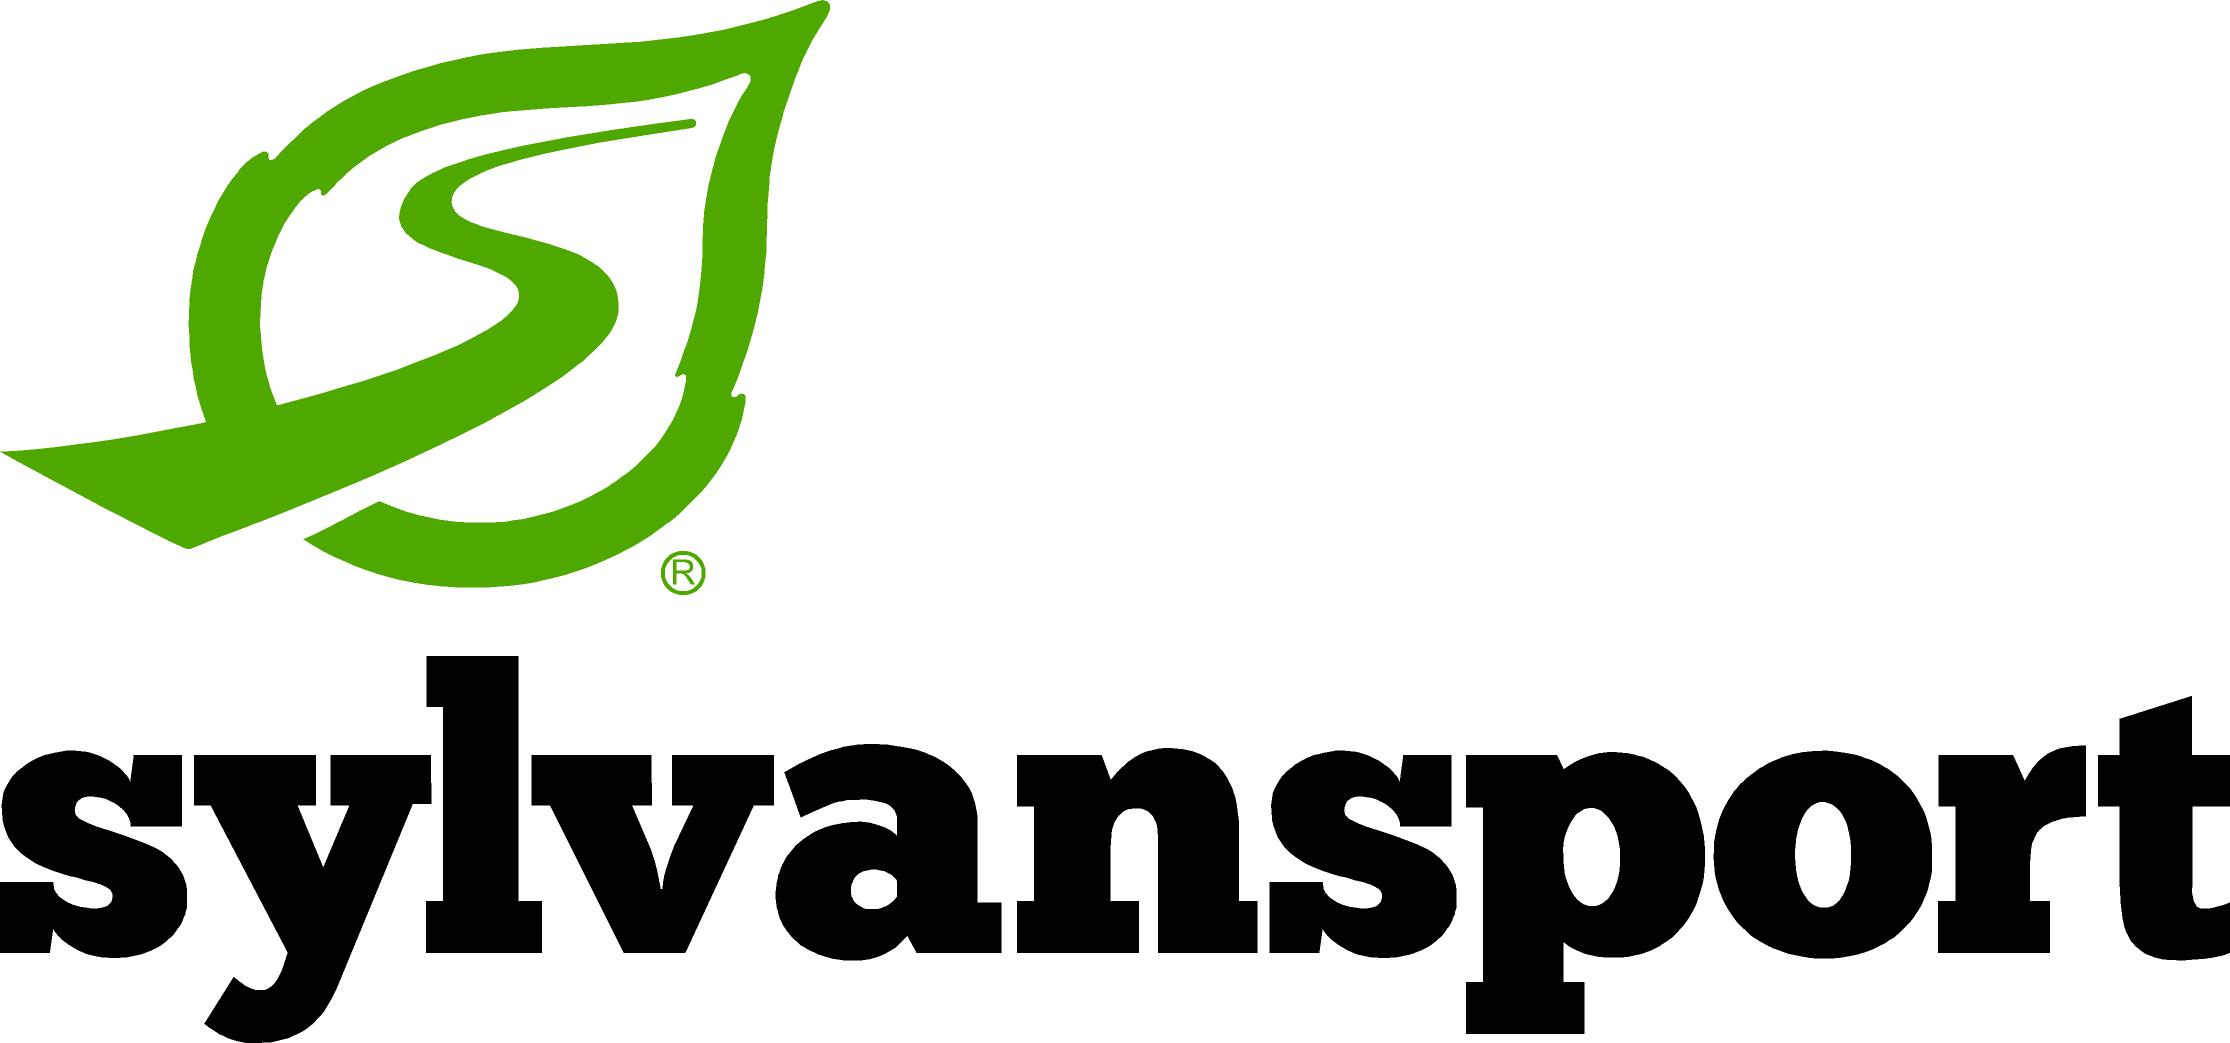 SylvanSport   SylvanSport was founded in 2004 to develop great gear to support our evolving sense of adventure. Adventure can be found…   Read More